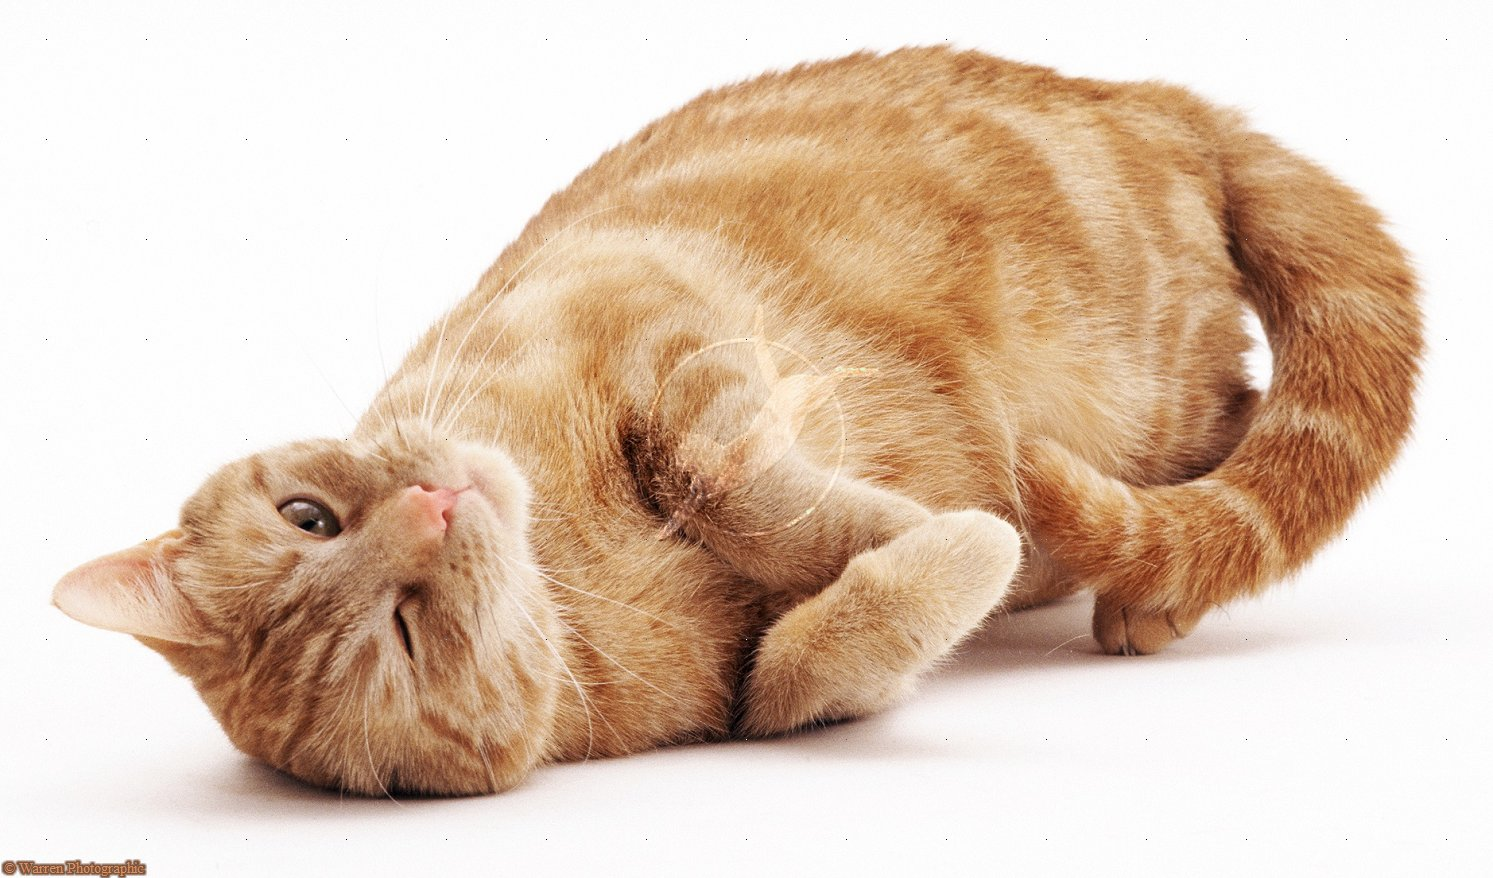 Contemporary This My Er Cat Mollie Mollie Was Lying Comfortably On A Mollie Began To Get Upand Vestibular Syndrome Cats Pet Product Guru I Were Out On I Was At Mycomputer houzz 01 Vestibular Disease In Cats